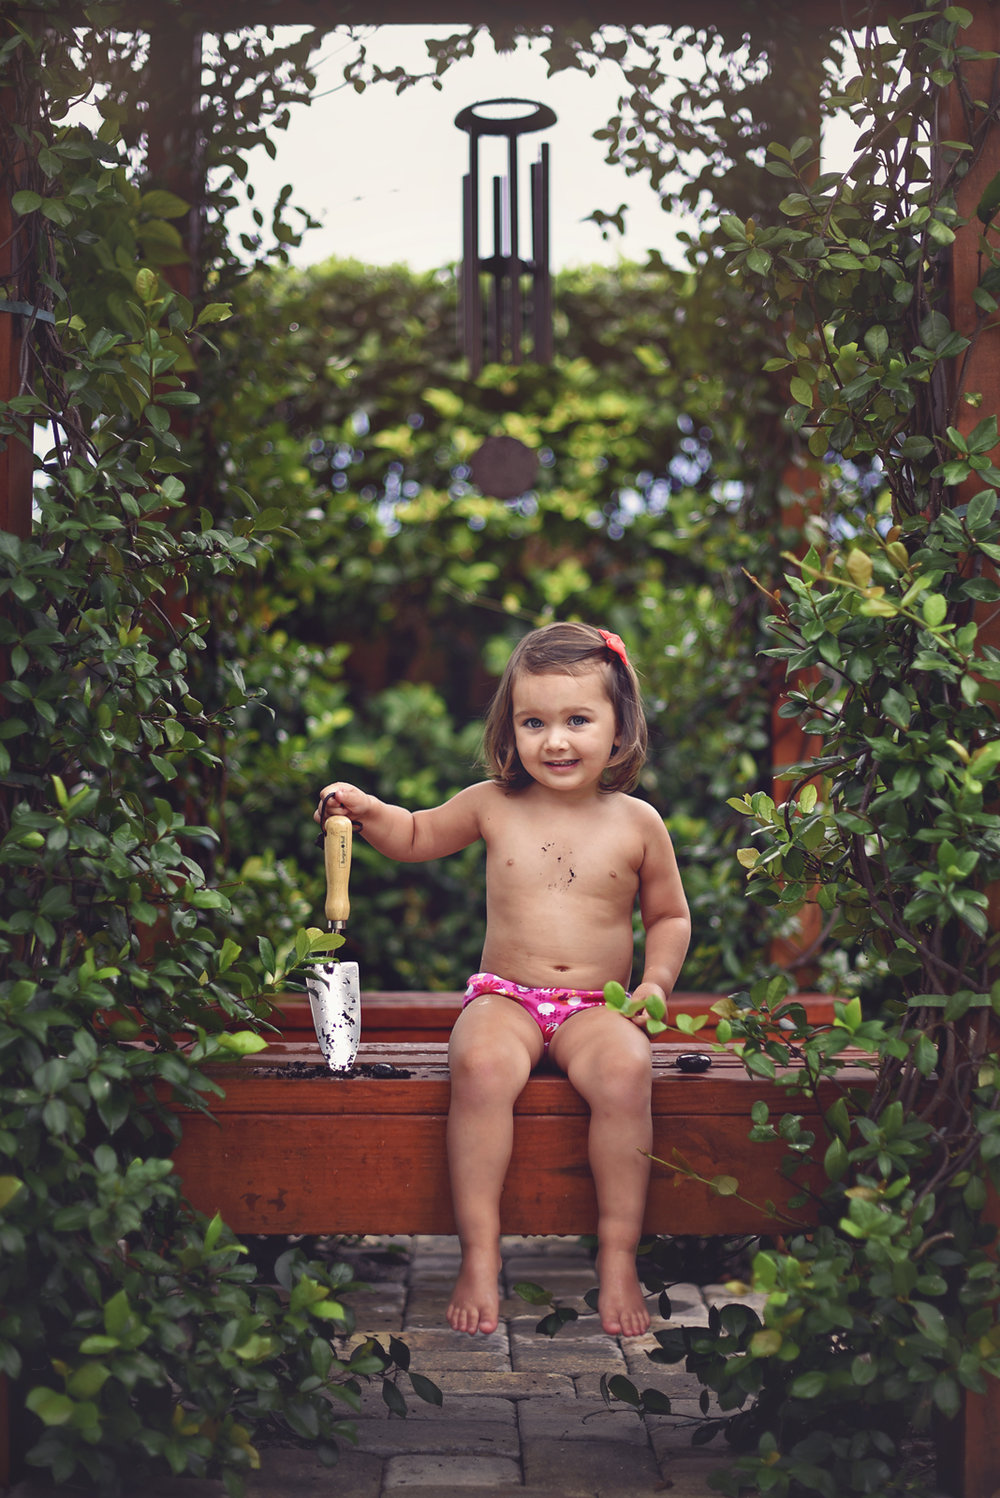 Kids Lifestyle Photos - The 95 Days of Summer Challenge